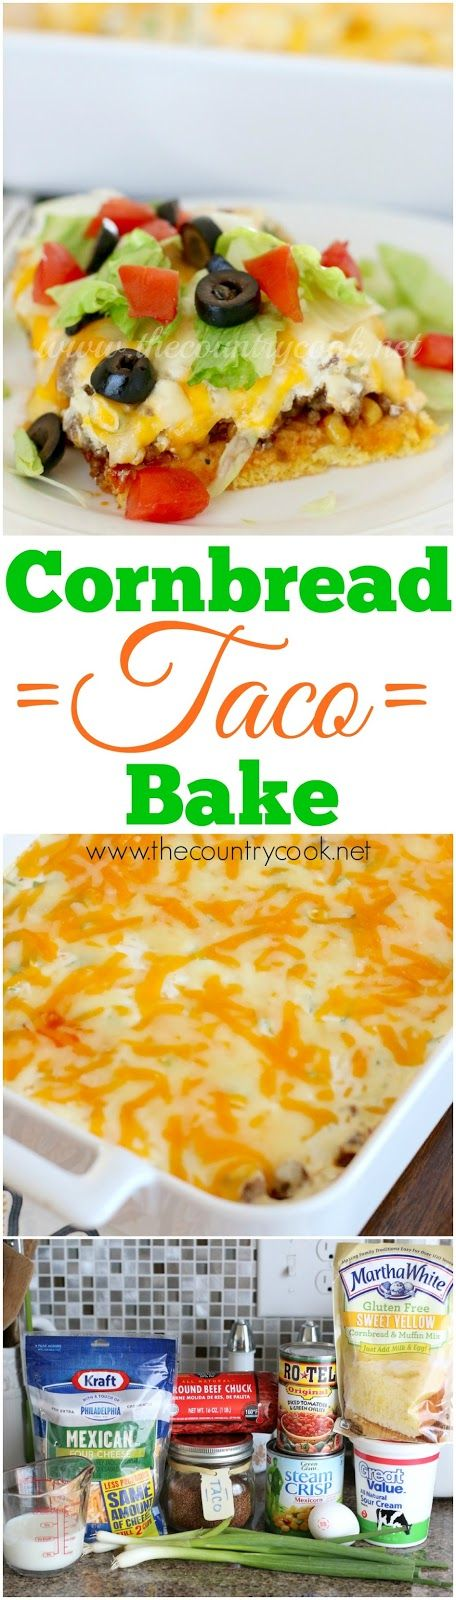 Cornbread Taco Bake recipe from The Country Cook. Gluten-free! I don't even eat a gluten-free diet and my family went crazy over how good this was. One of my new favorite dinners!